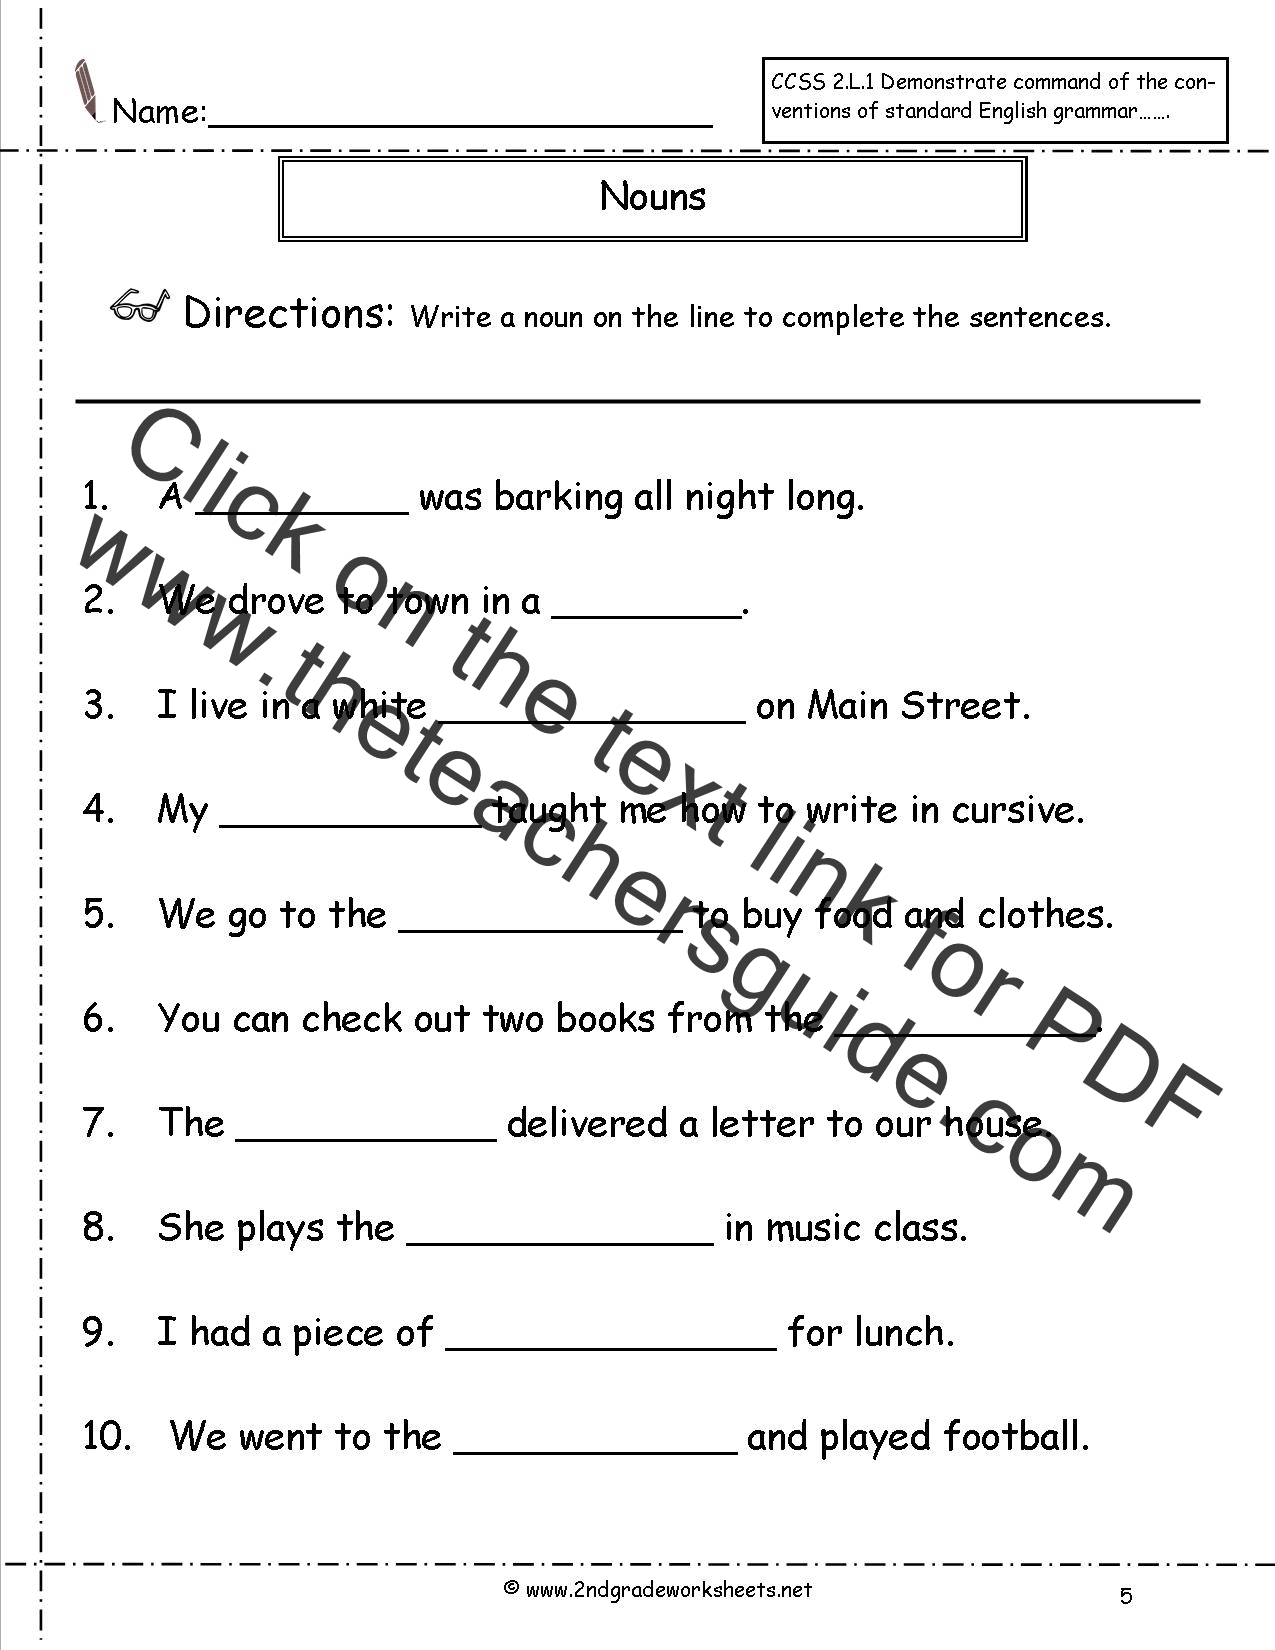 Worksheets Nouns Worksheet nouns worksheets and printouts worksheet